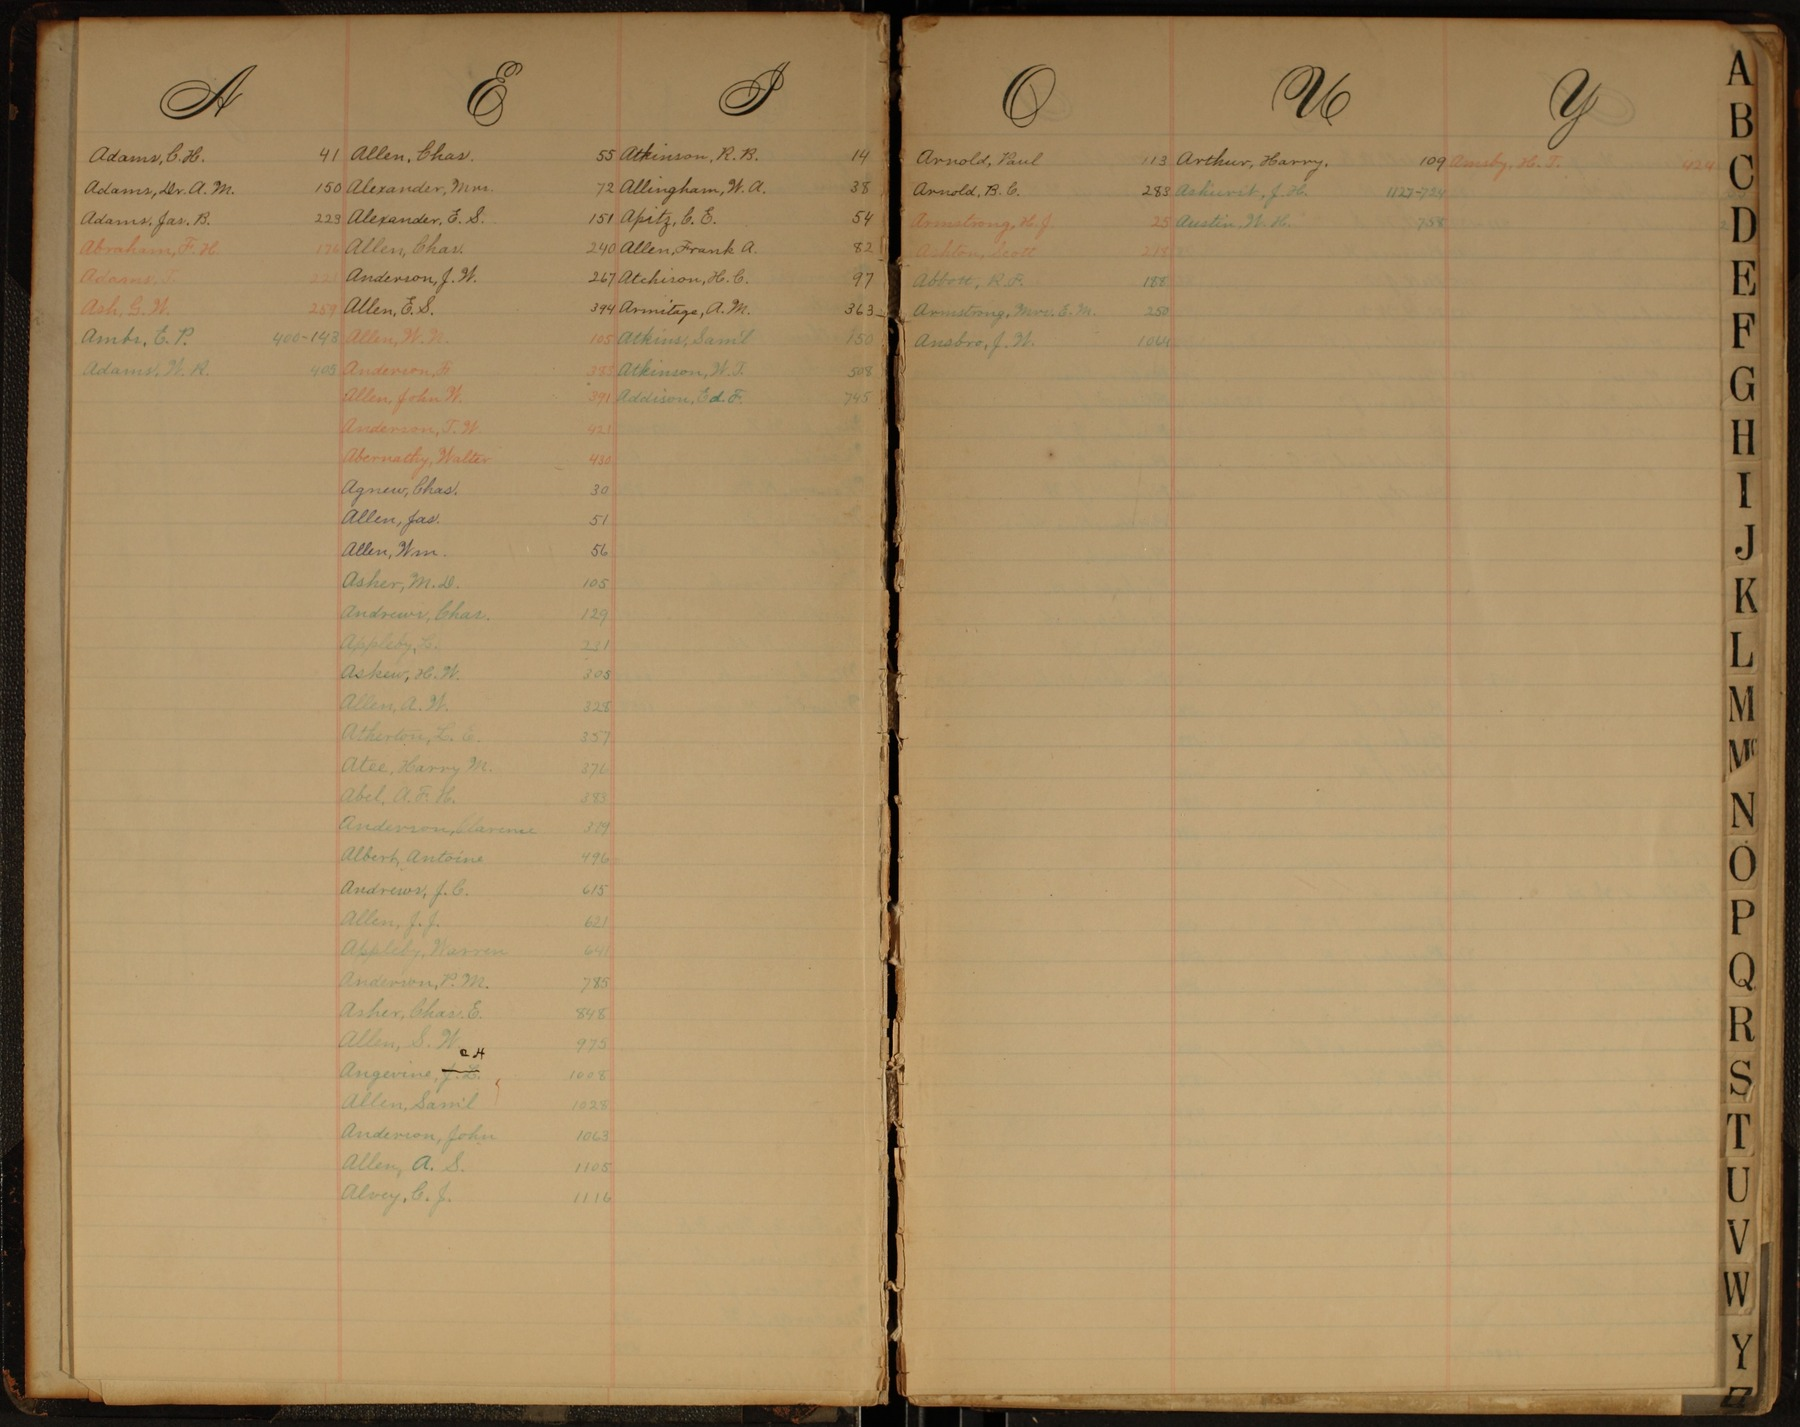 Hermon S. Major papers - Index A